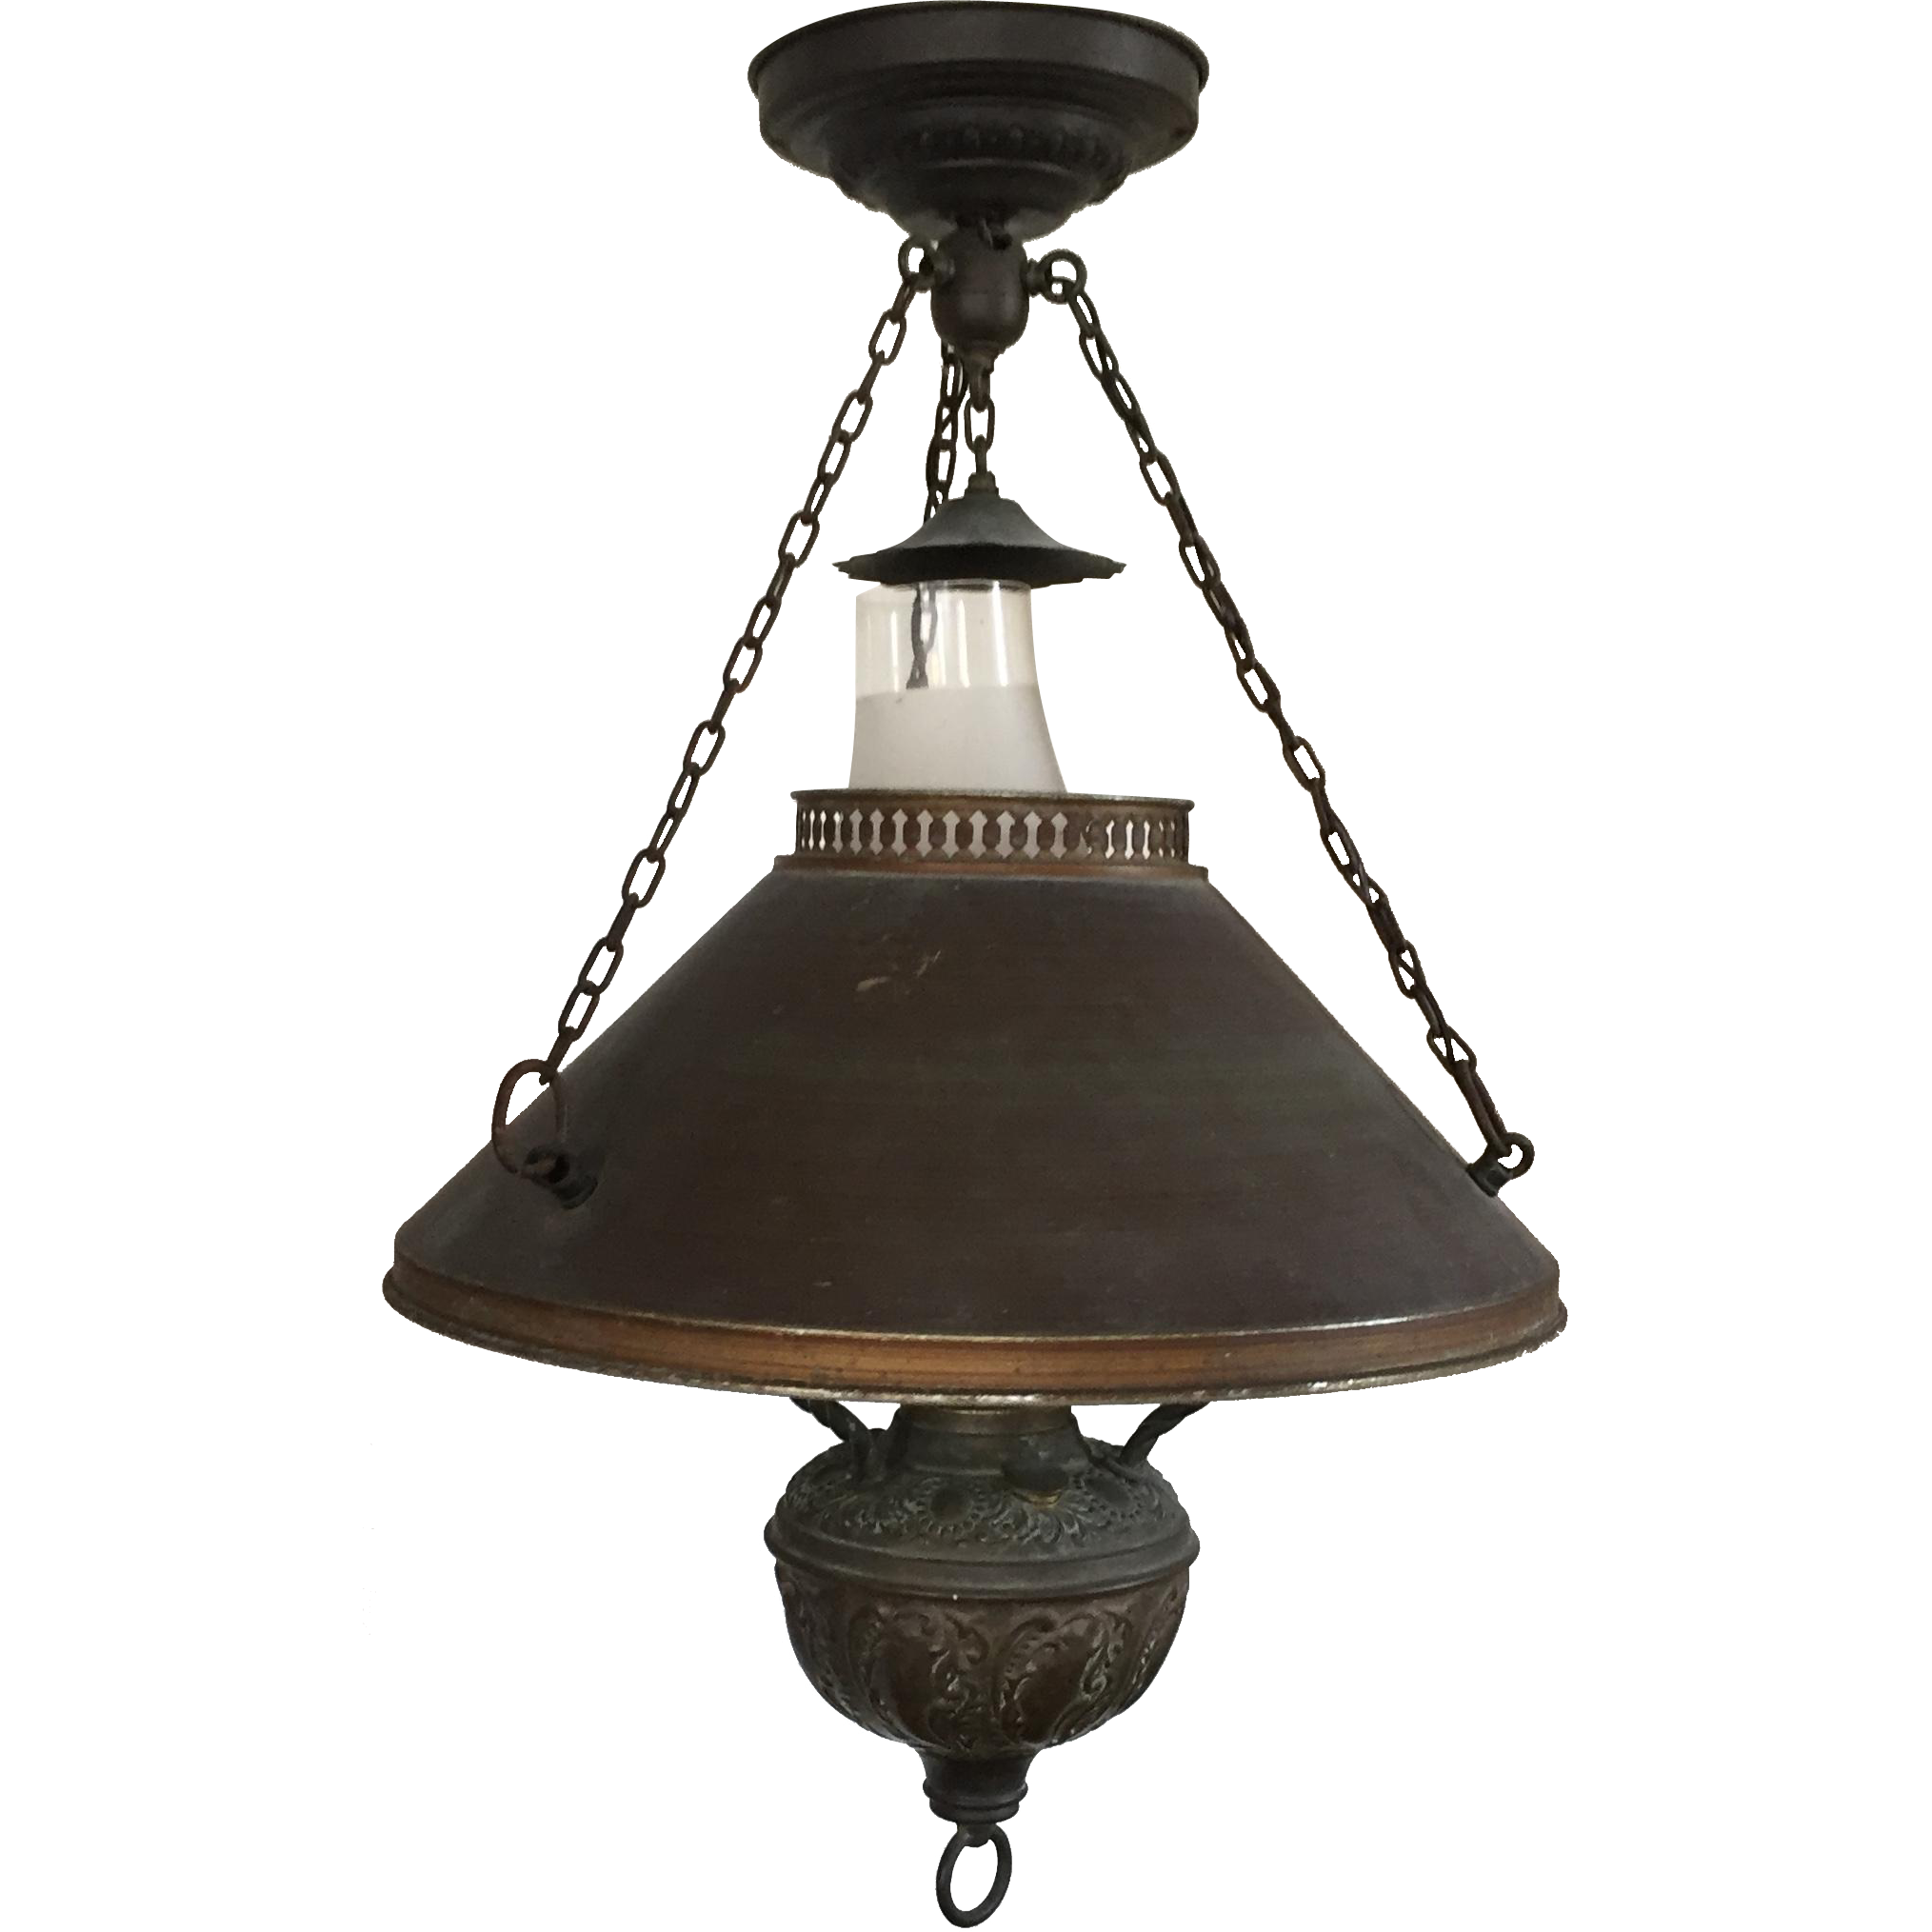 Antique 19th Century Chandelier Hanging Oil Lamp Ceiling Light Fixture From C